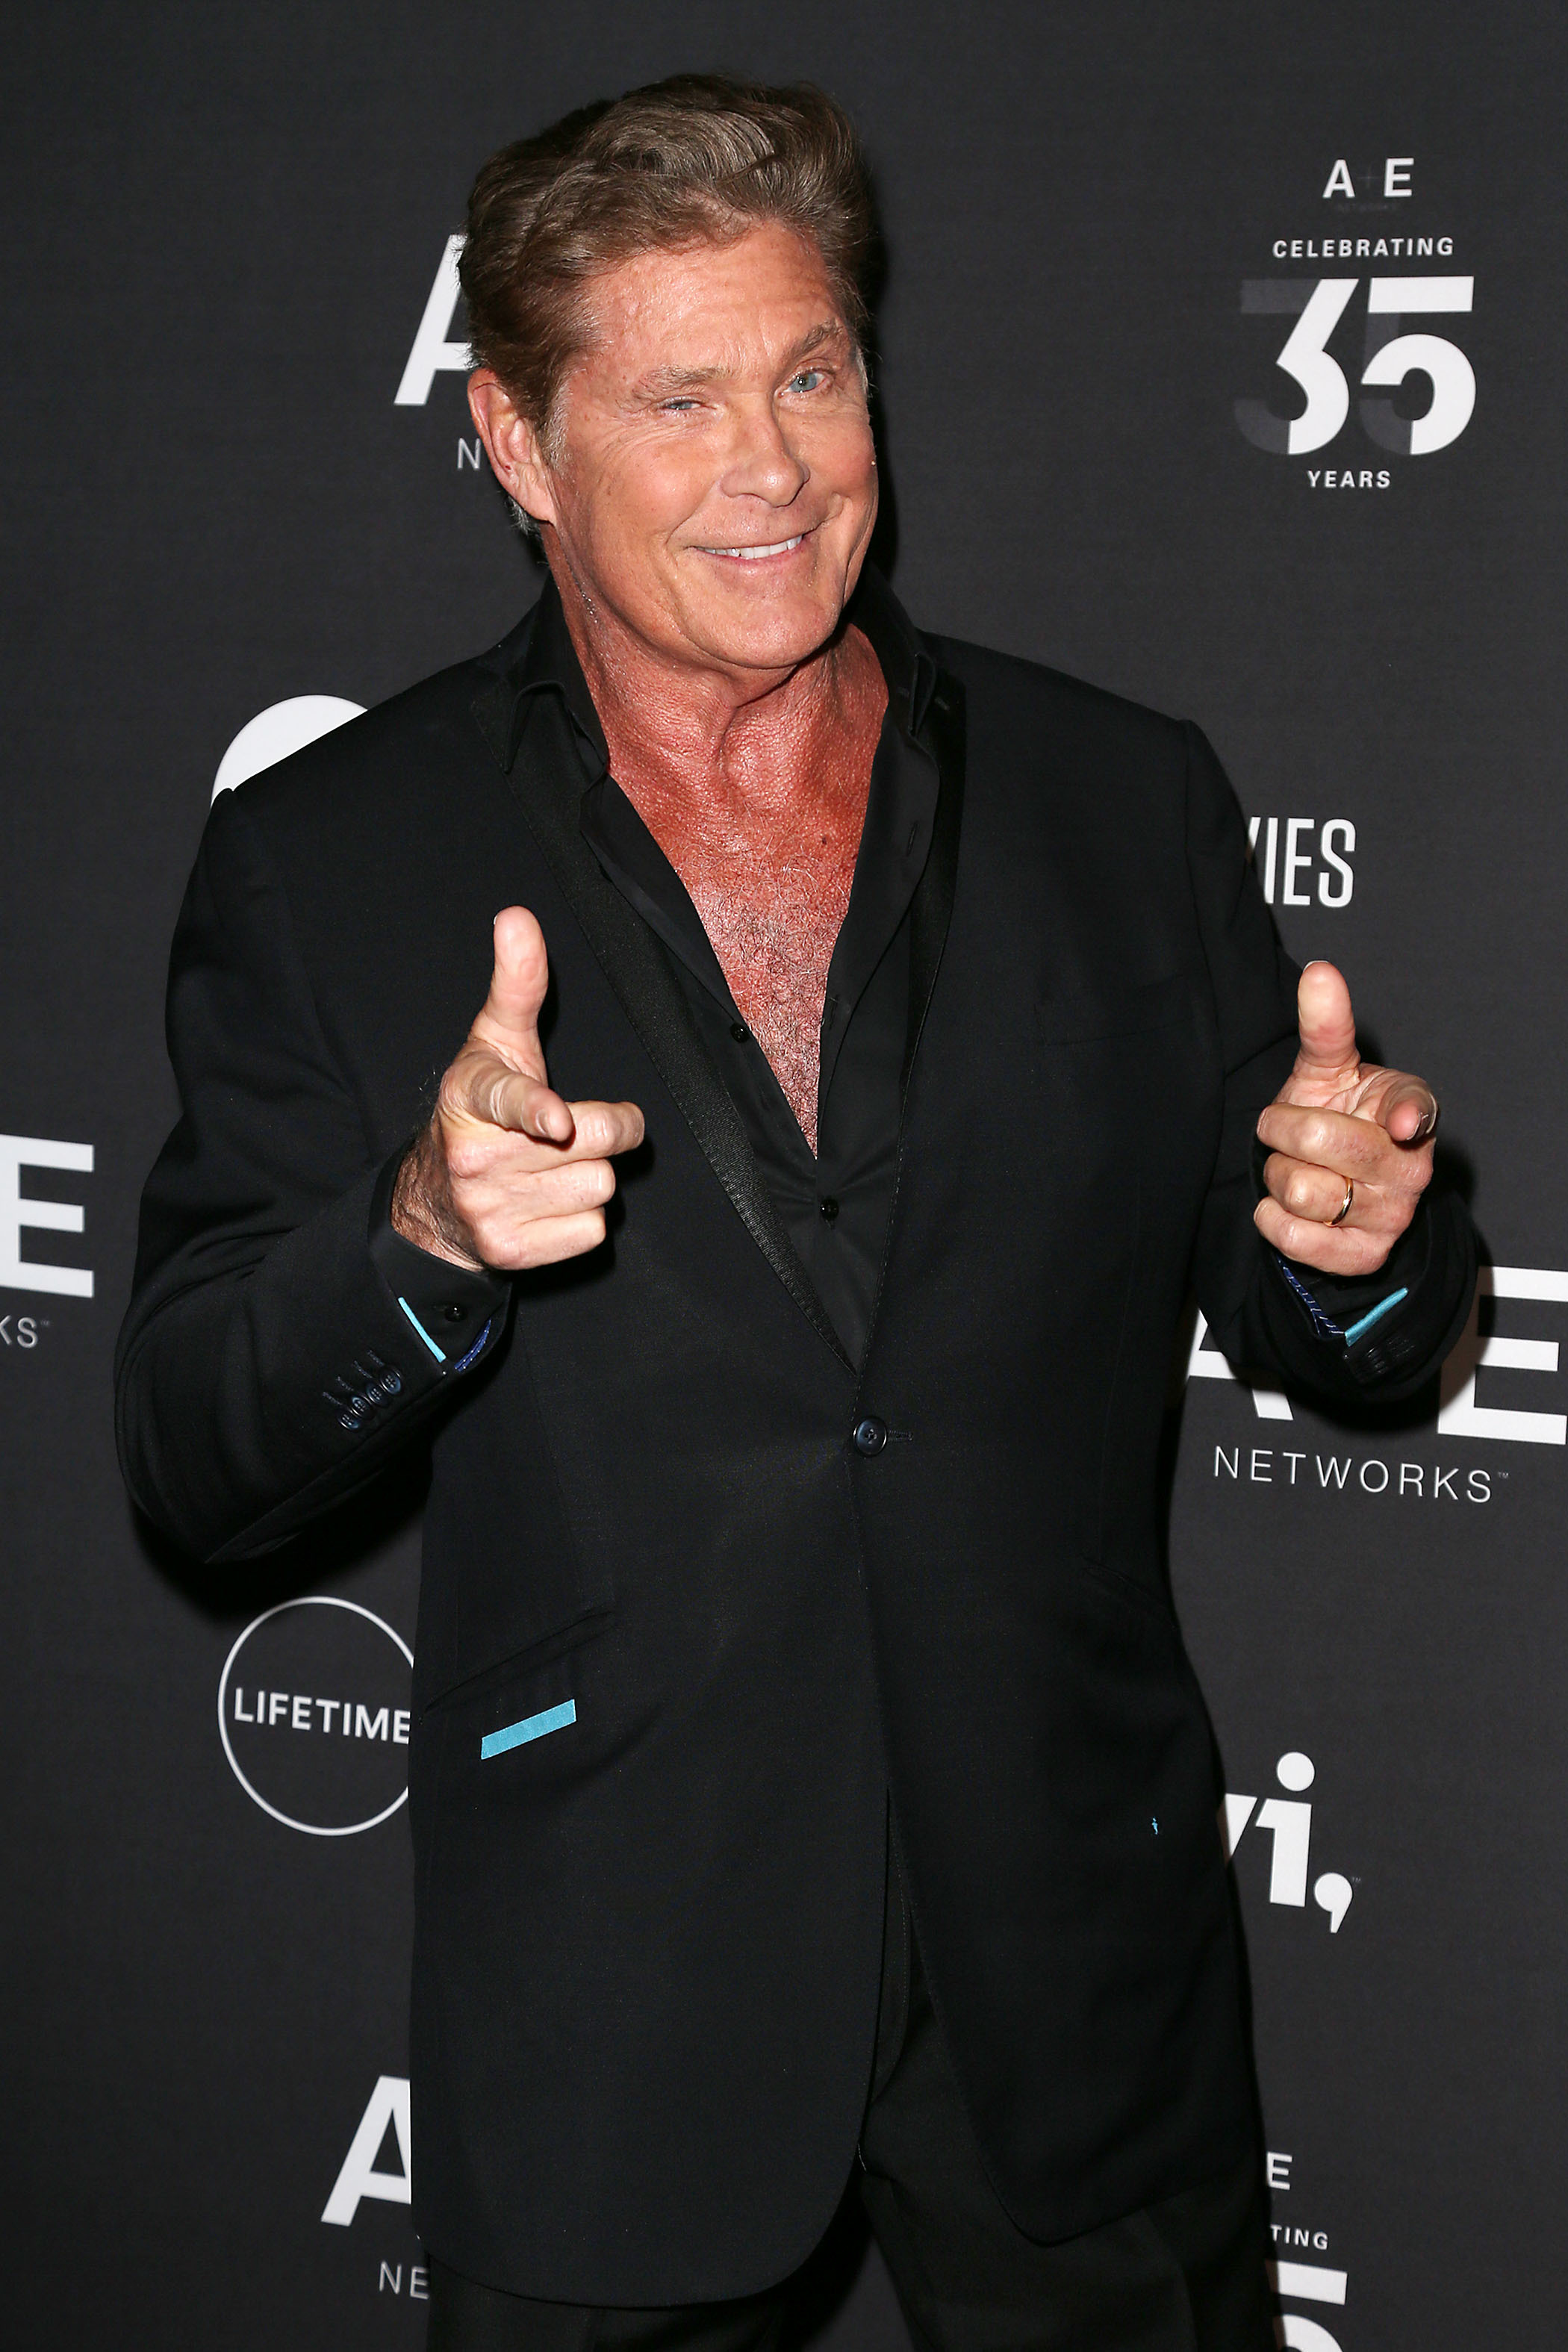 David Hasselhoff attends the A+E Networks' 2019 Upfront in New York City on March 27, 2019.